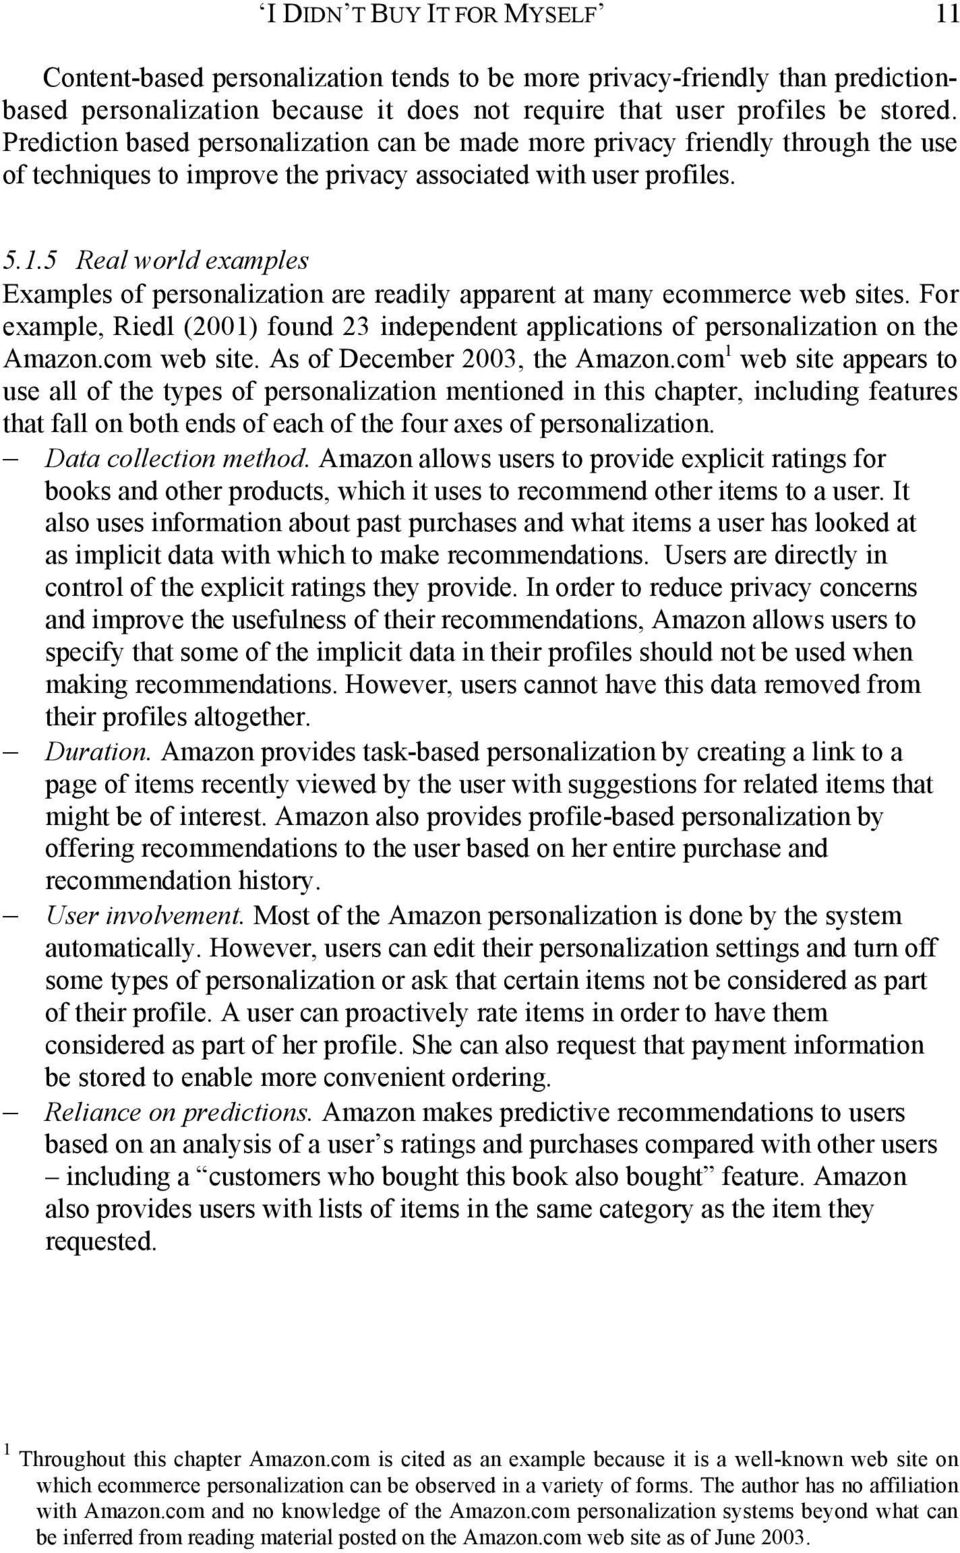 5 Real world examples Examples of personalization are readily apparent at many ecommerce web sites. For example, Riedl (2001) found 23 independent applications of personalization on the Amazon.